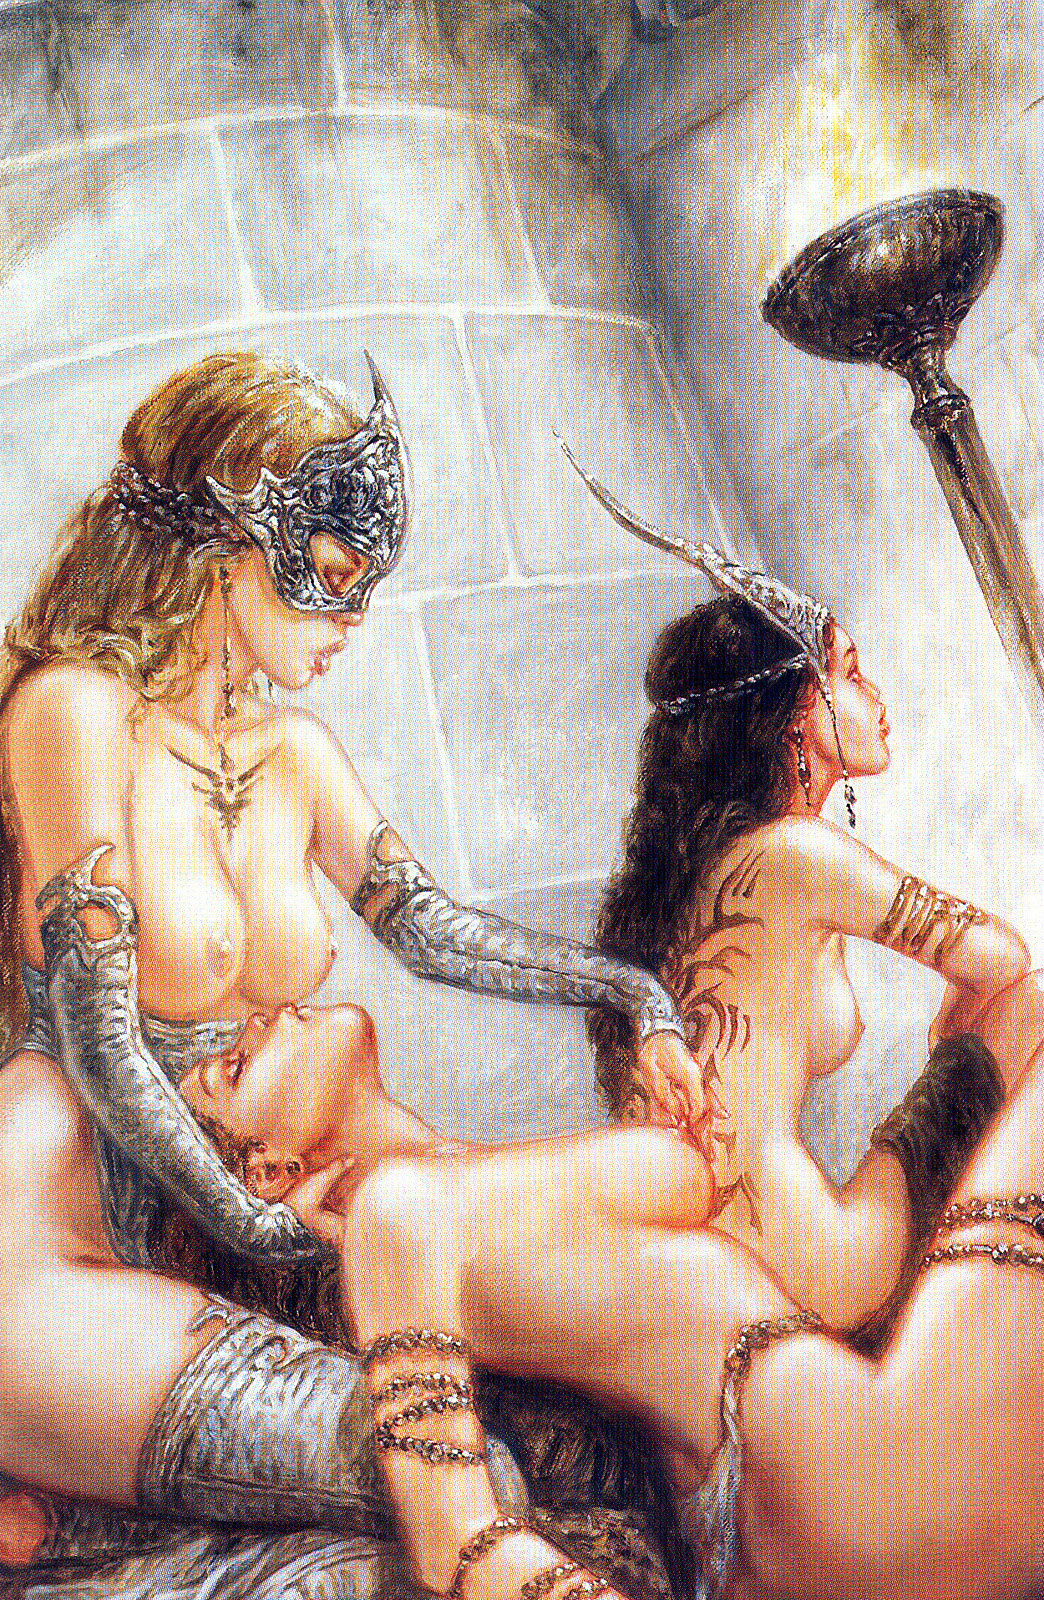 Erotic sex fantasy art naked movie